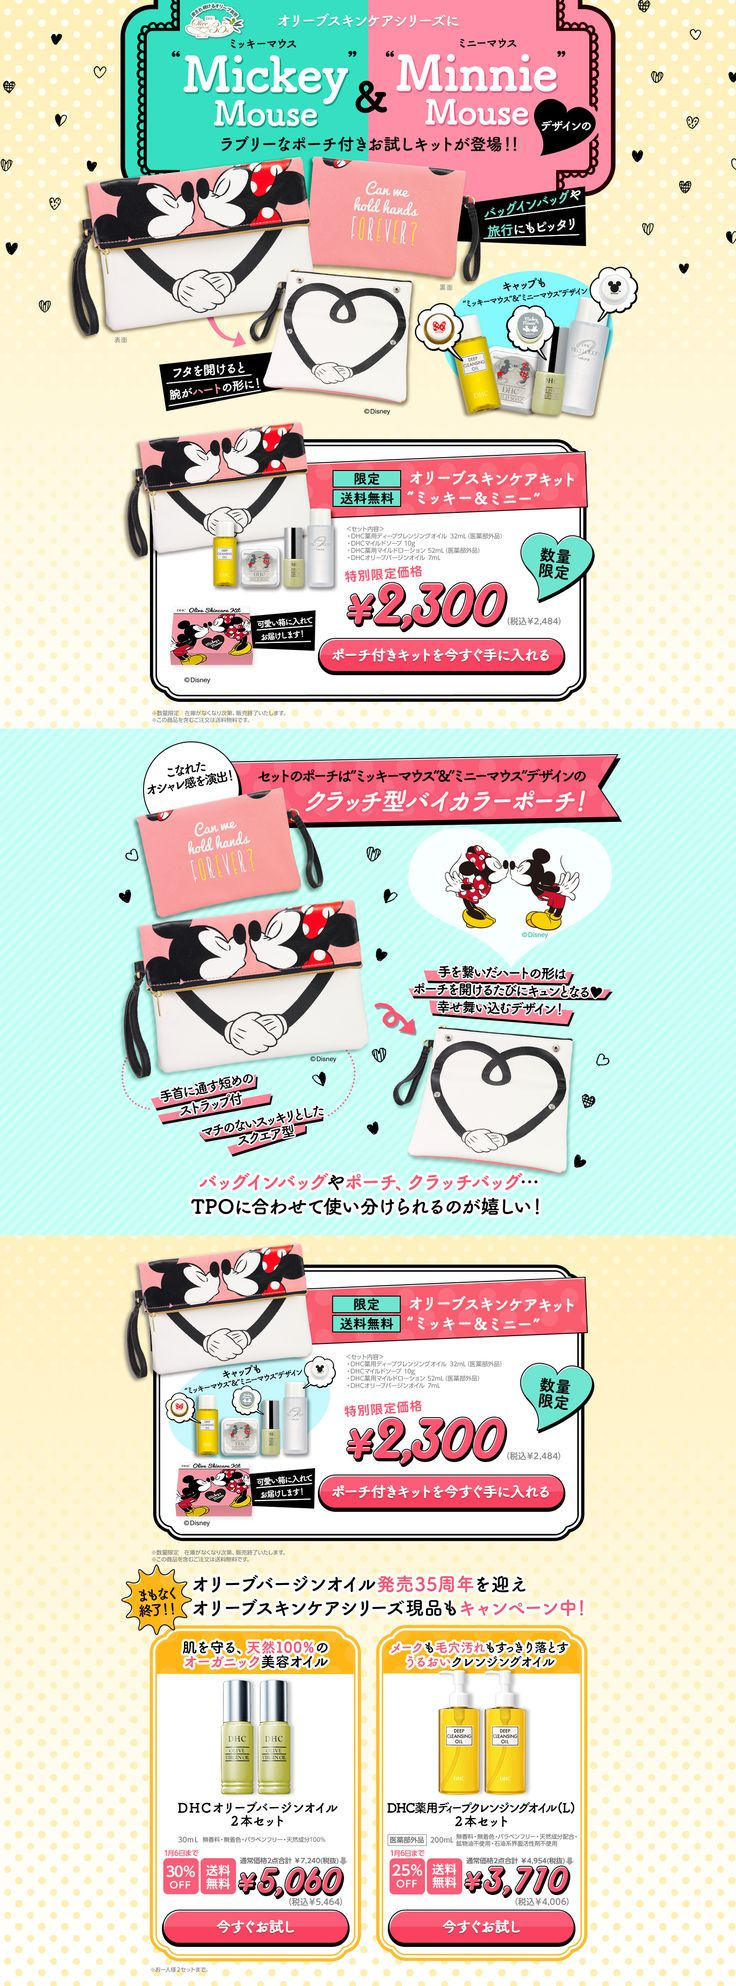 """DHC Web LP Disney """"ディズニー""""デザイン オリーブスキンケアキット ミッキーマウス&ミニーマウスMickeymouse & Minniemouse  LP dhc cosme website page"""